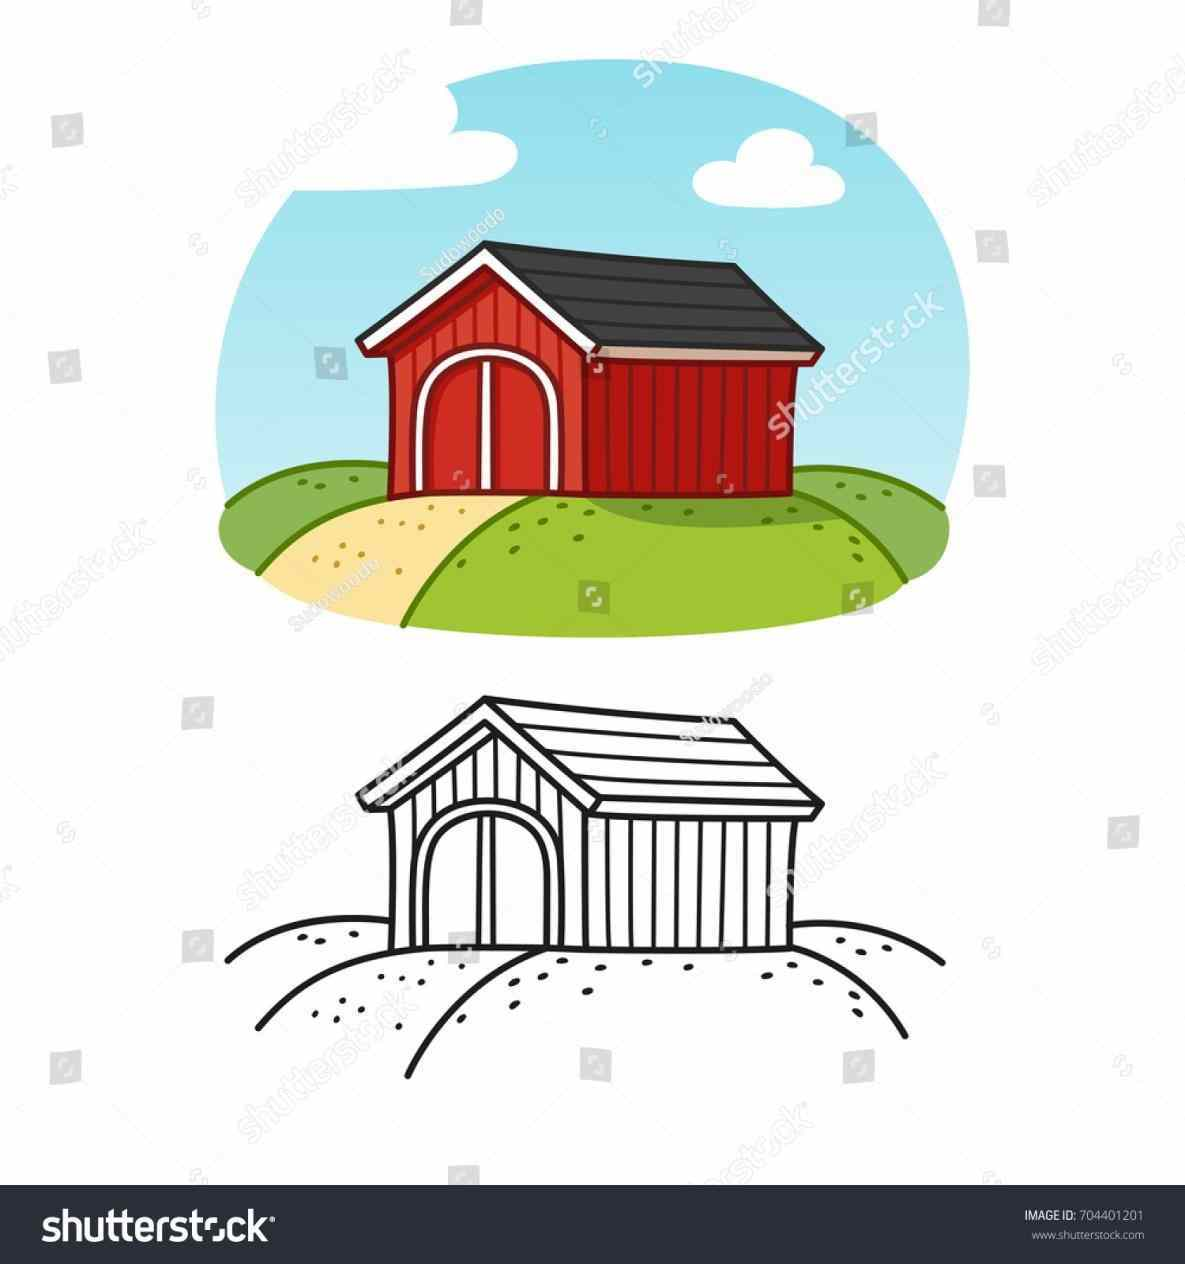 1185x1264 Clipart Free Clip Art Little Barn Drawing Colored Red Clipart Free